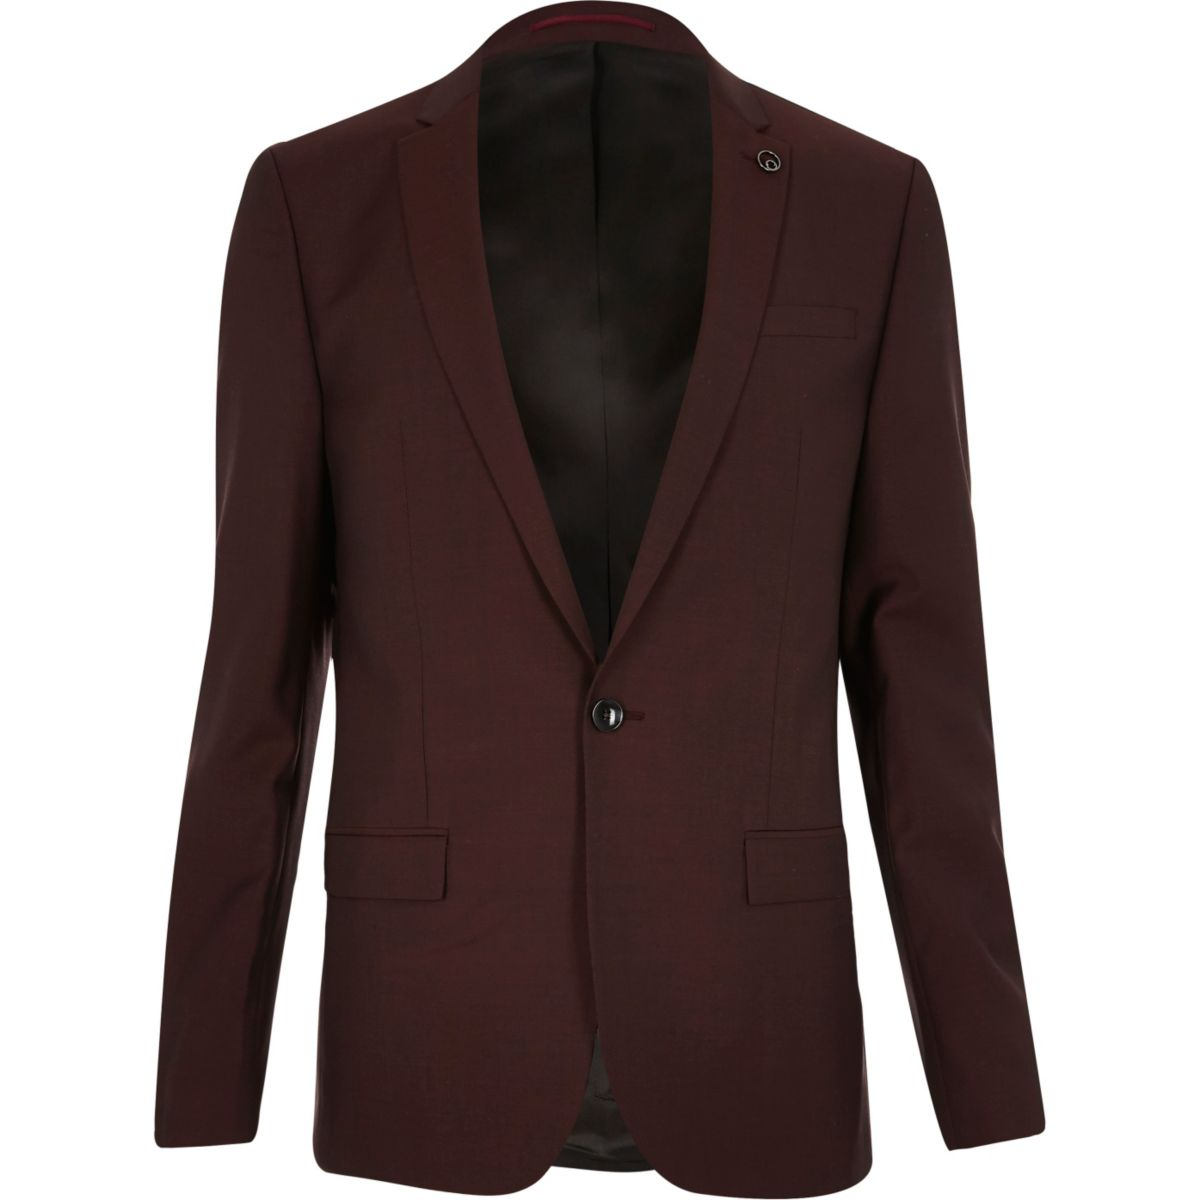 Berry skinny suit jacket